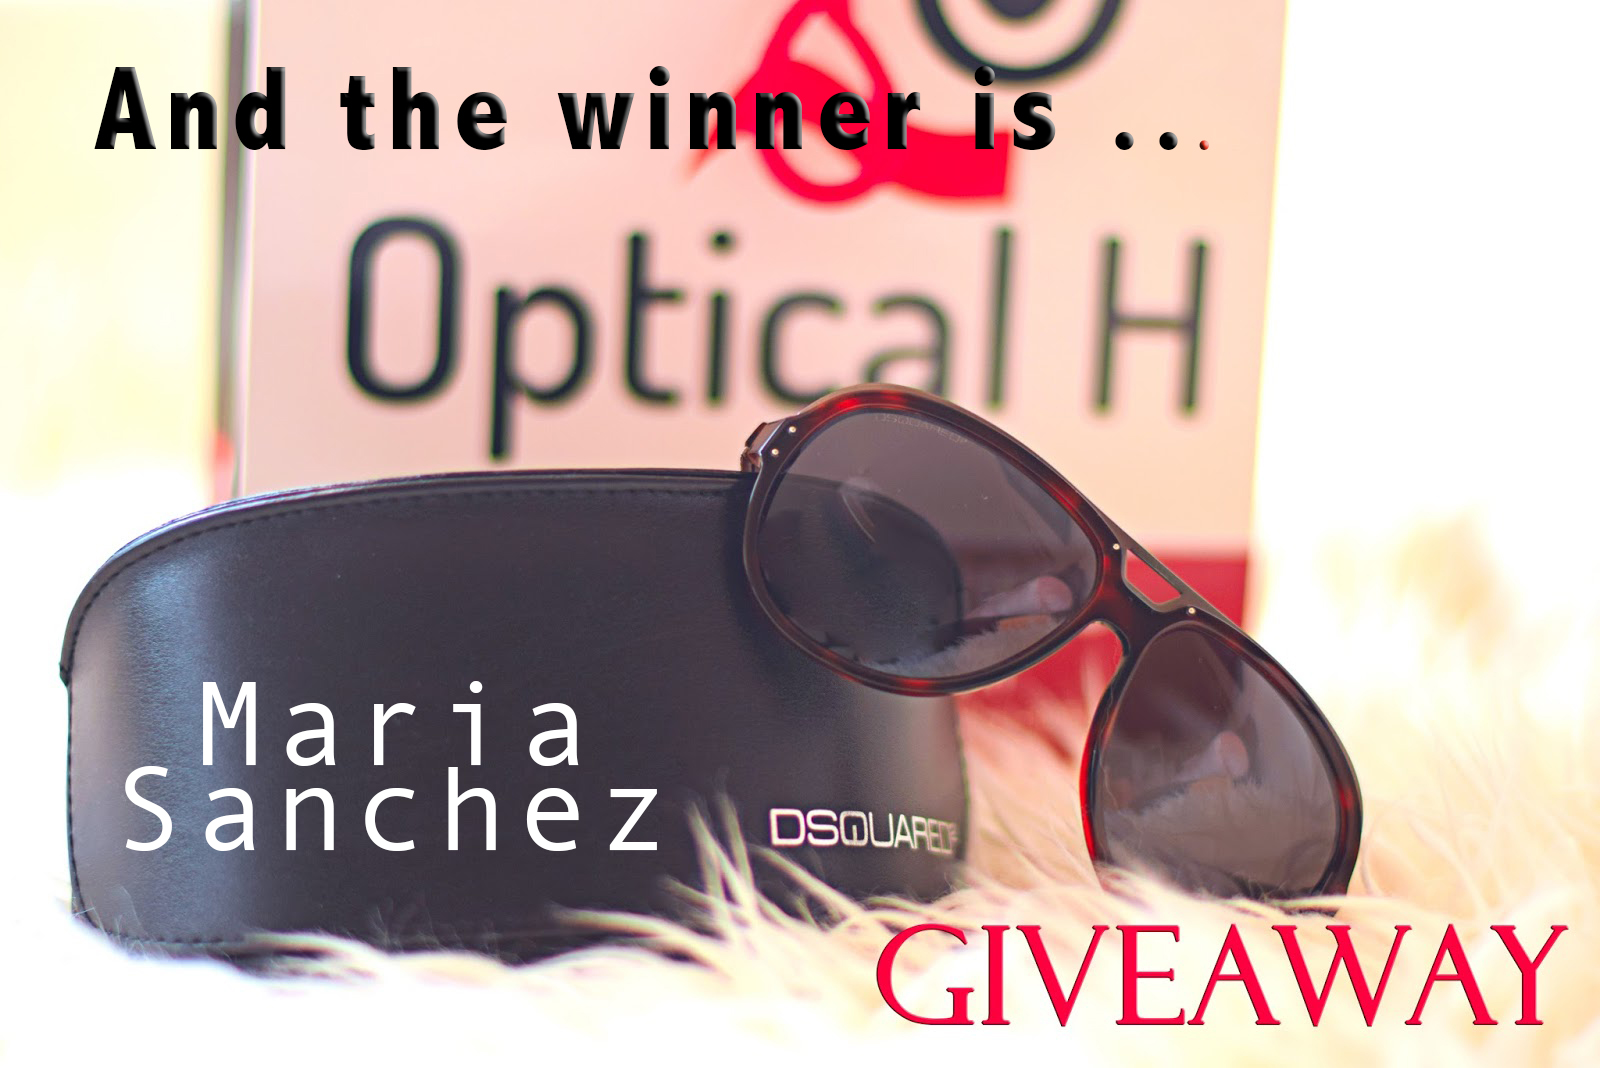 nery hdez, giveaway, opticalh, ,